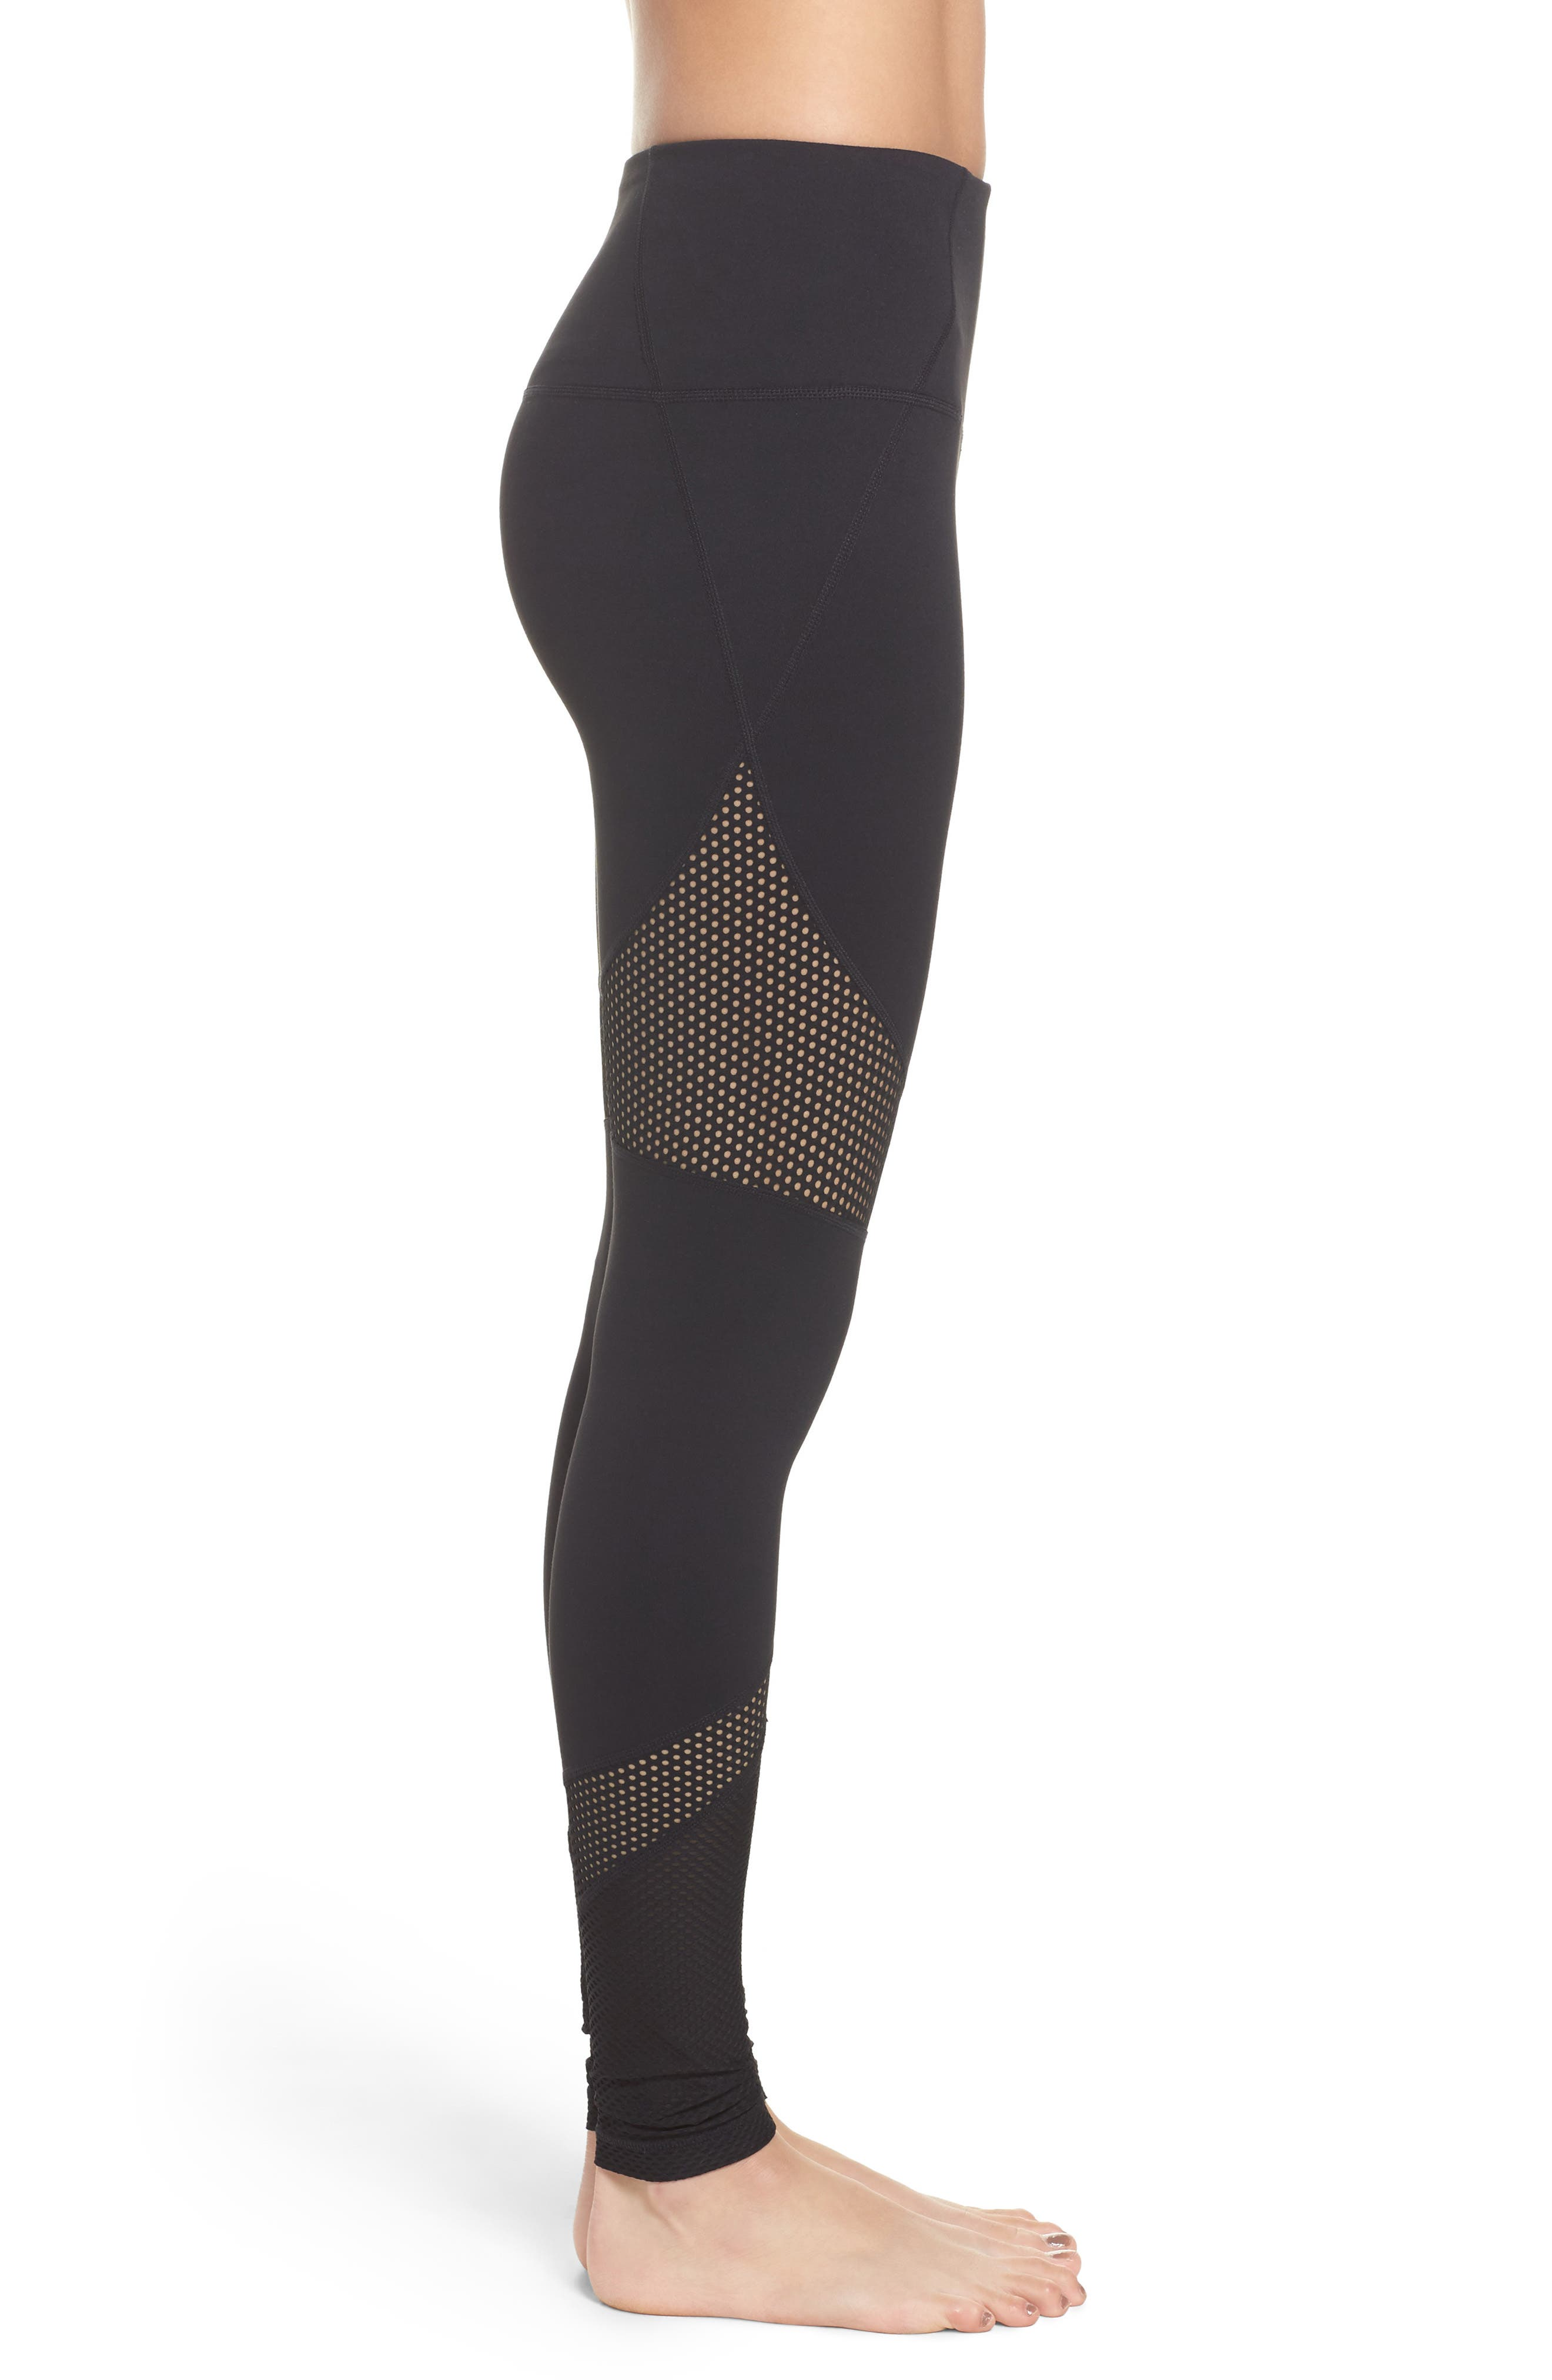 Out of Bounds High Waist Leggings,                             Alternate thumbnail 3, color,                             001